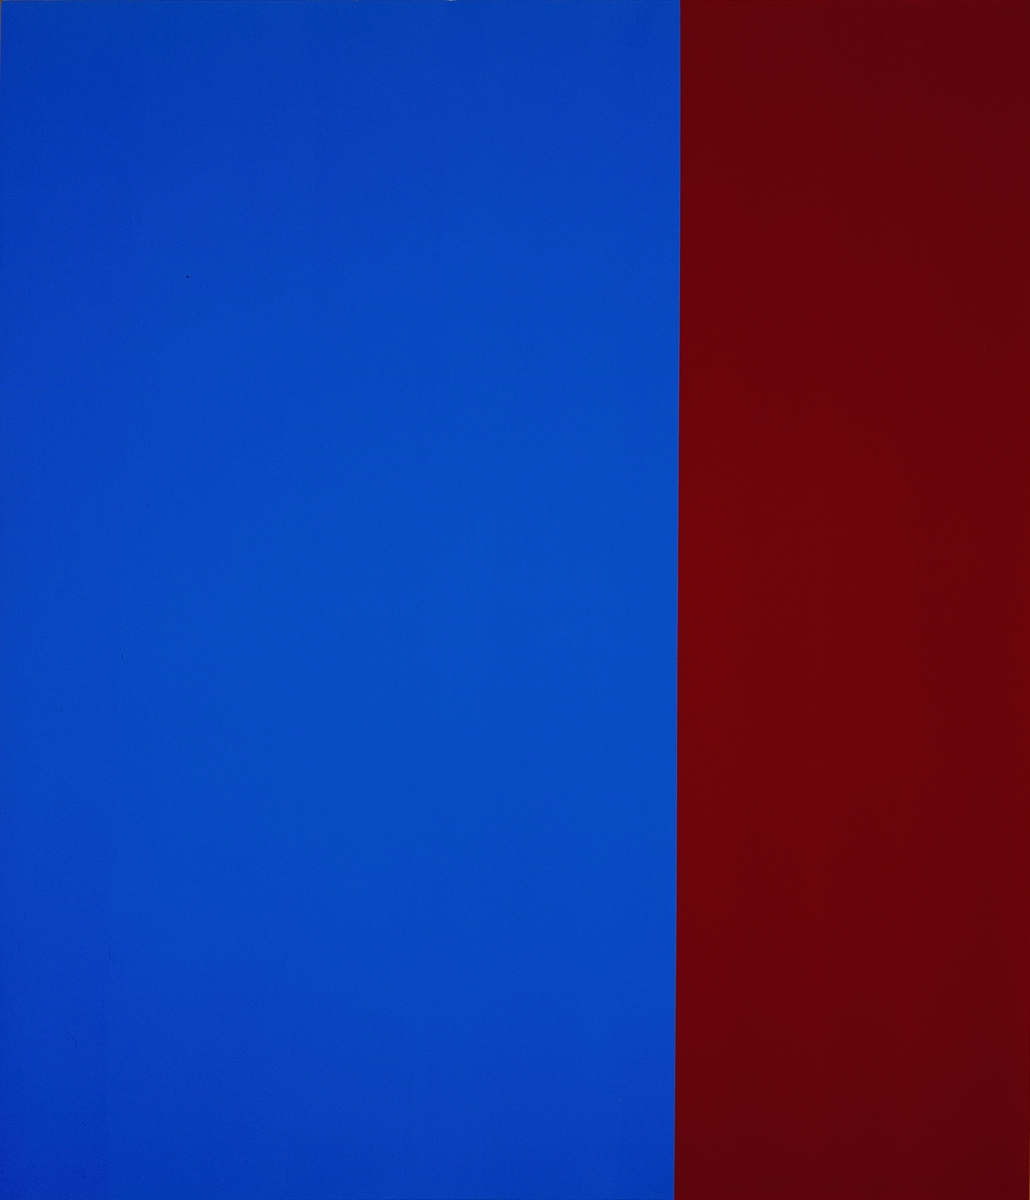 Barnett Newman, Unfinished painting, 1970. The Menil Collection, Houston.